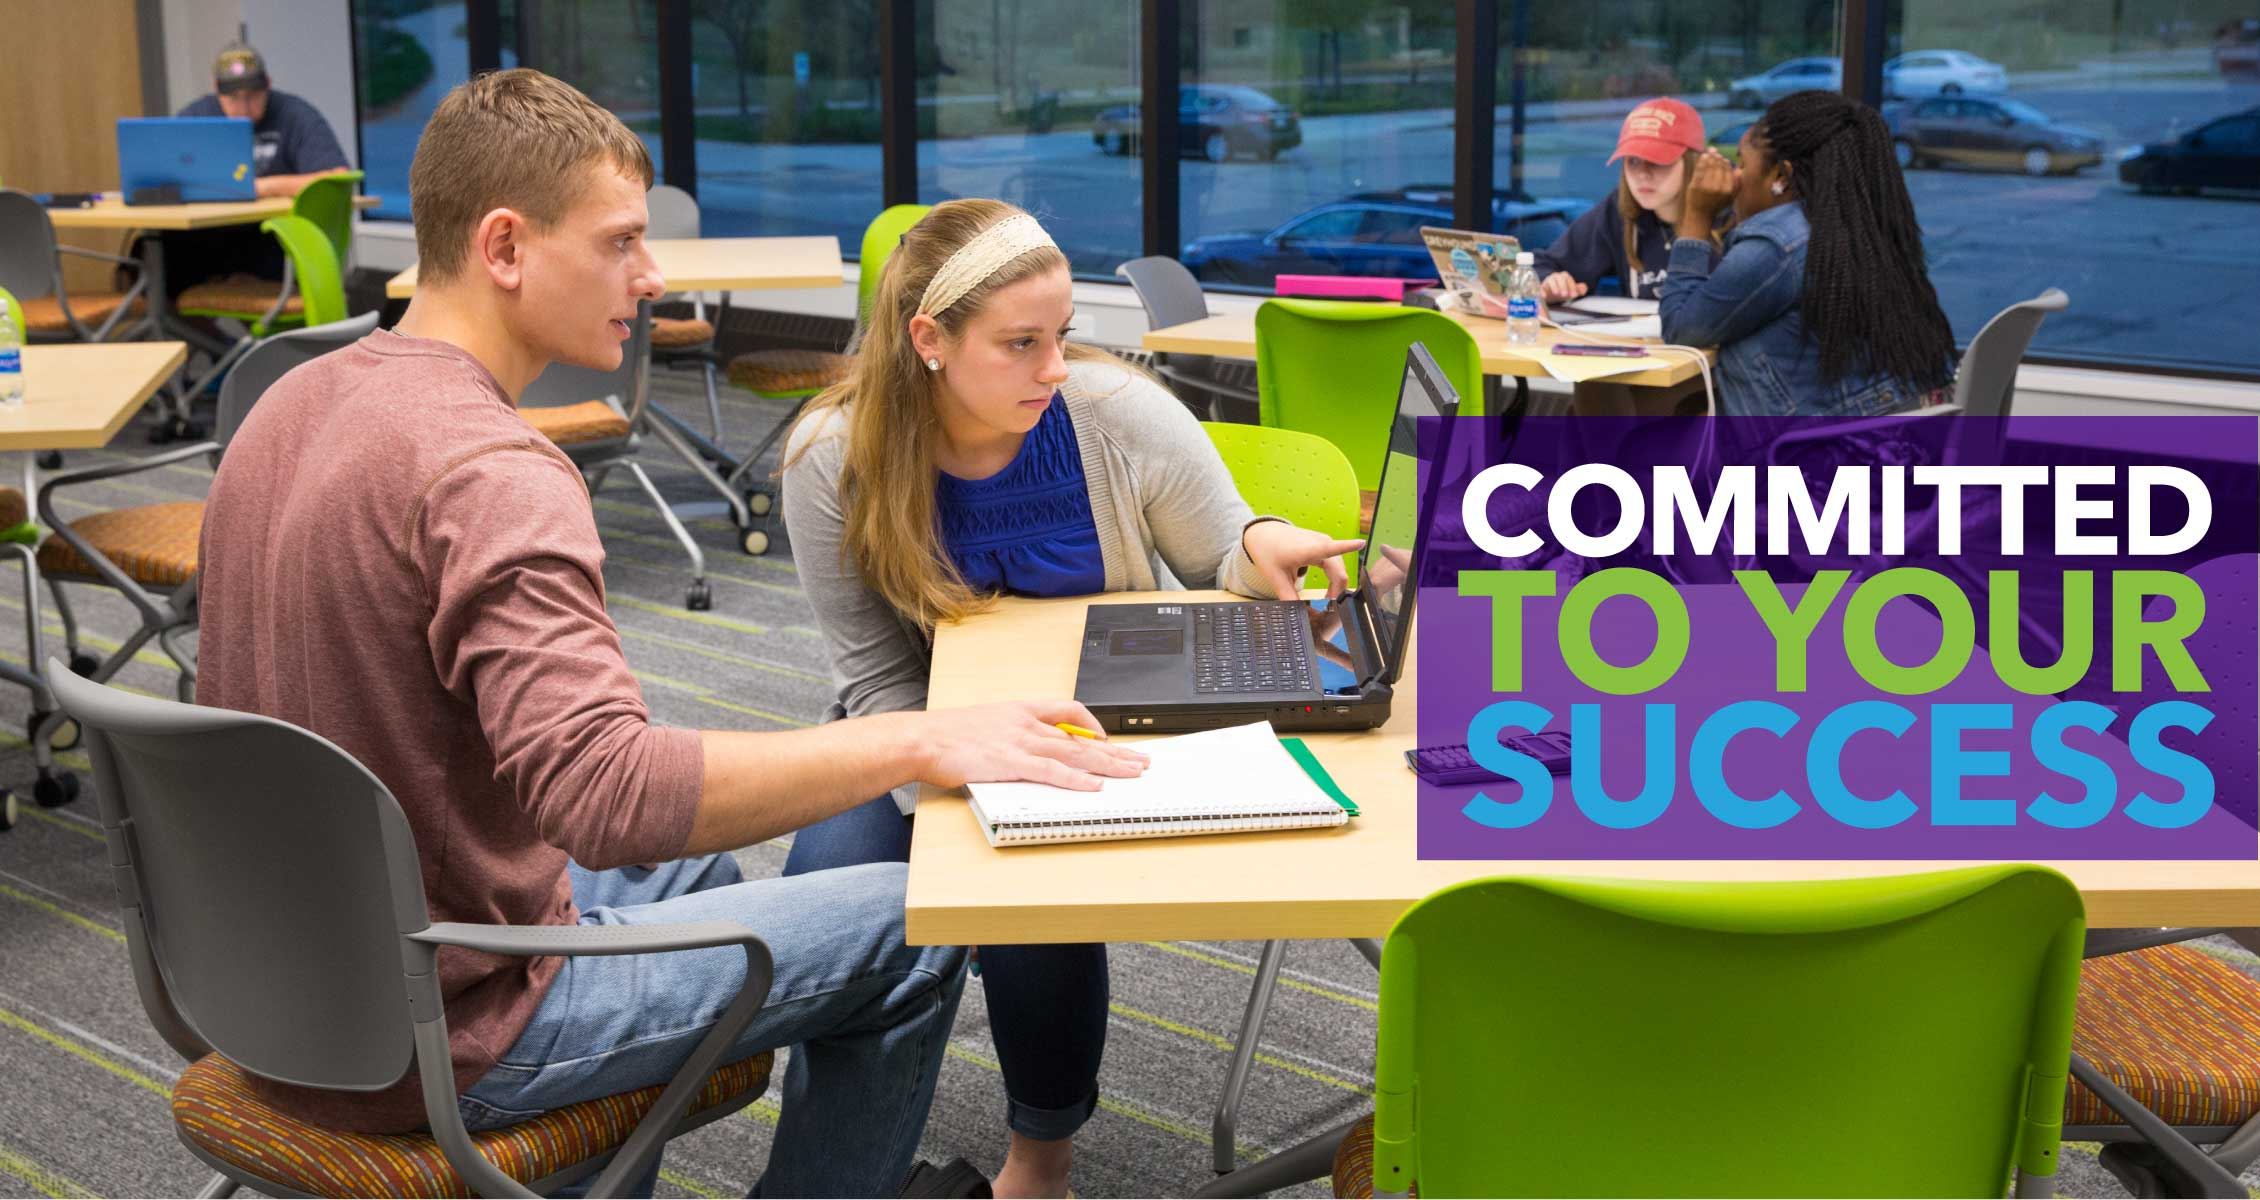 Committed to Your Success: Students studying together in a bright, open room